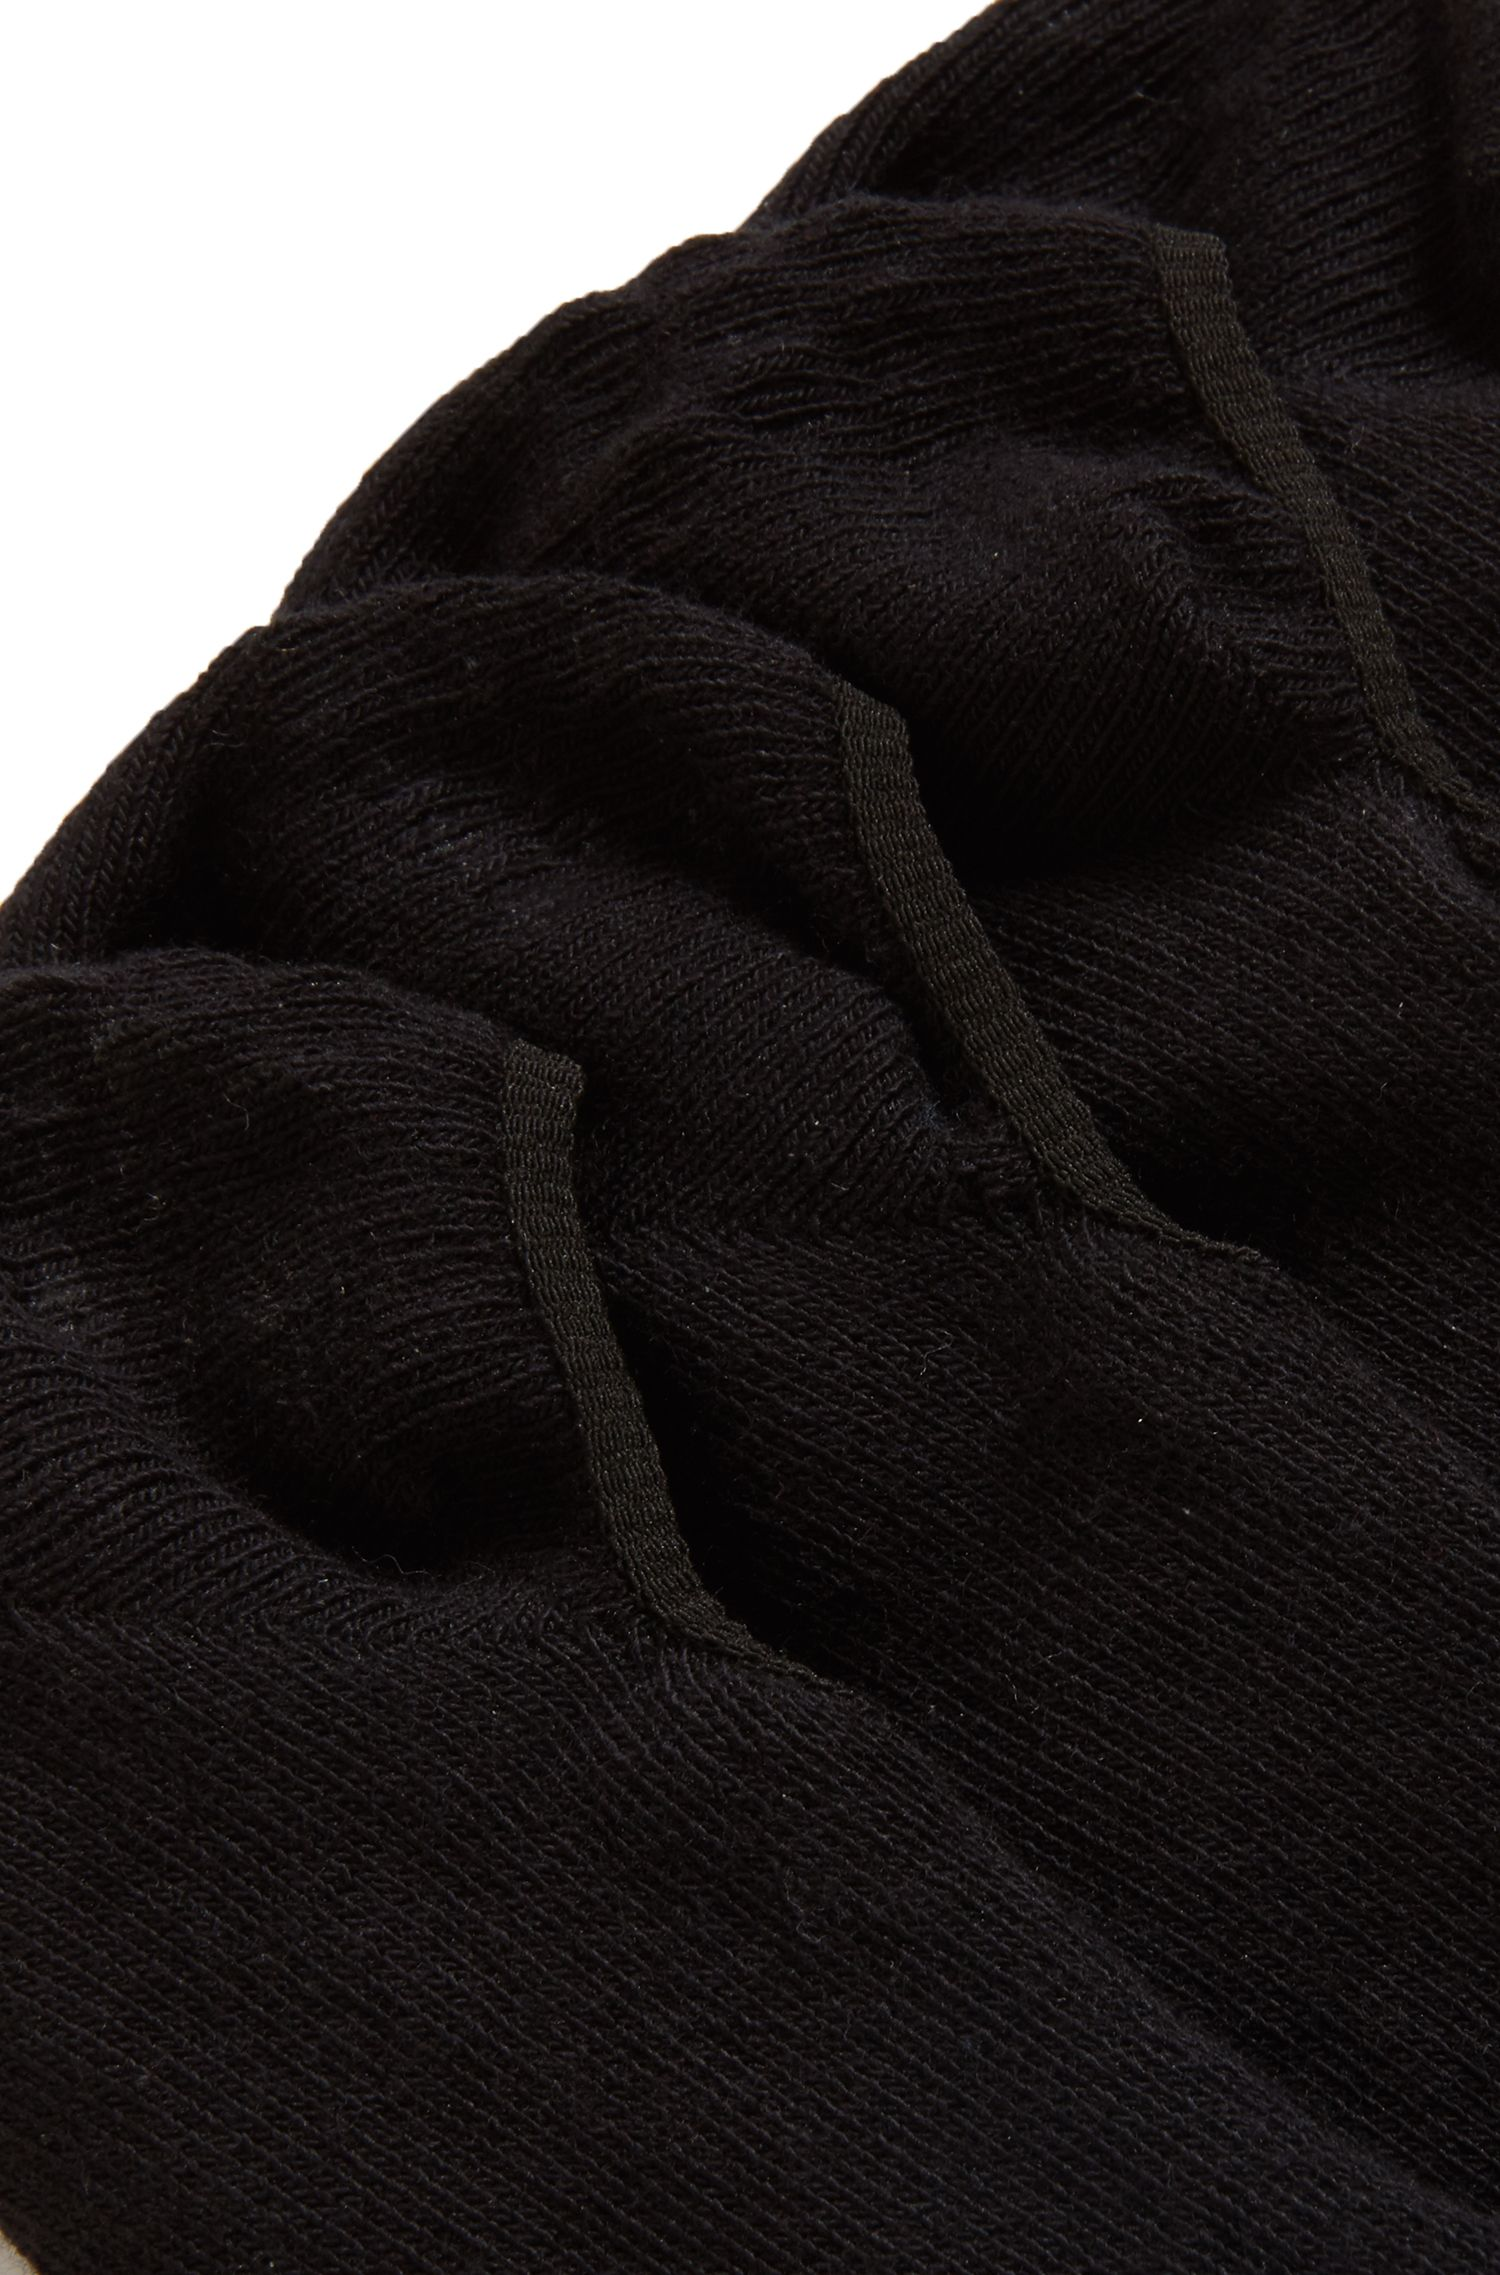 Two-pack of invisible socks finished with silicone, Black